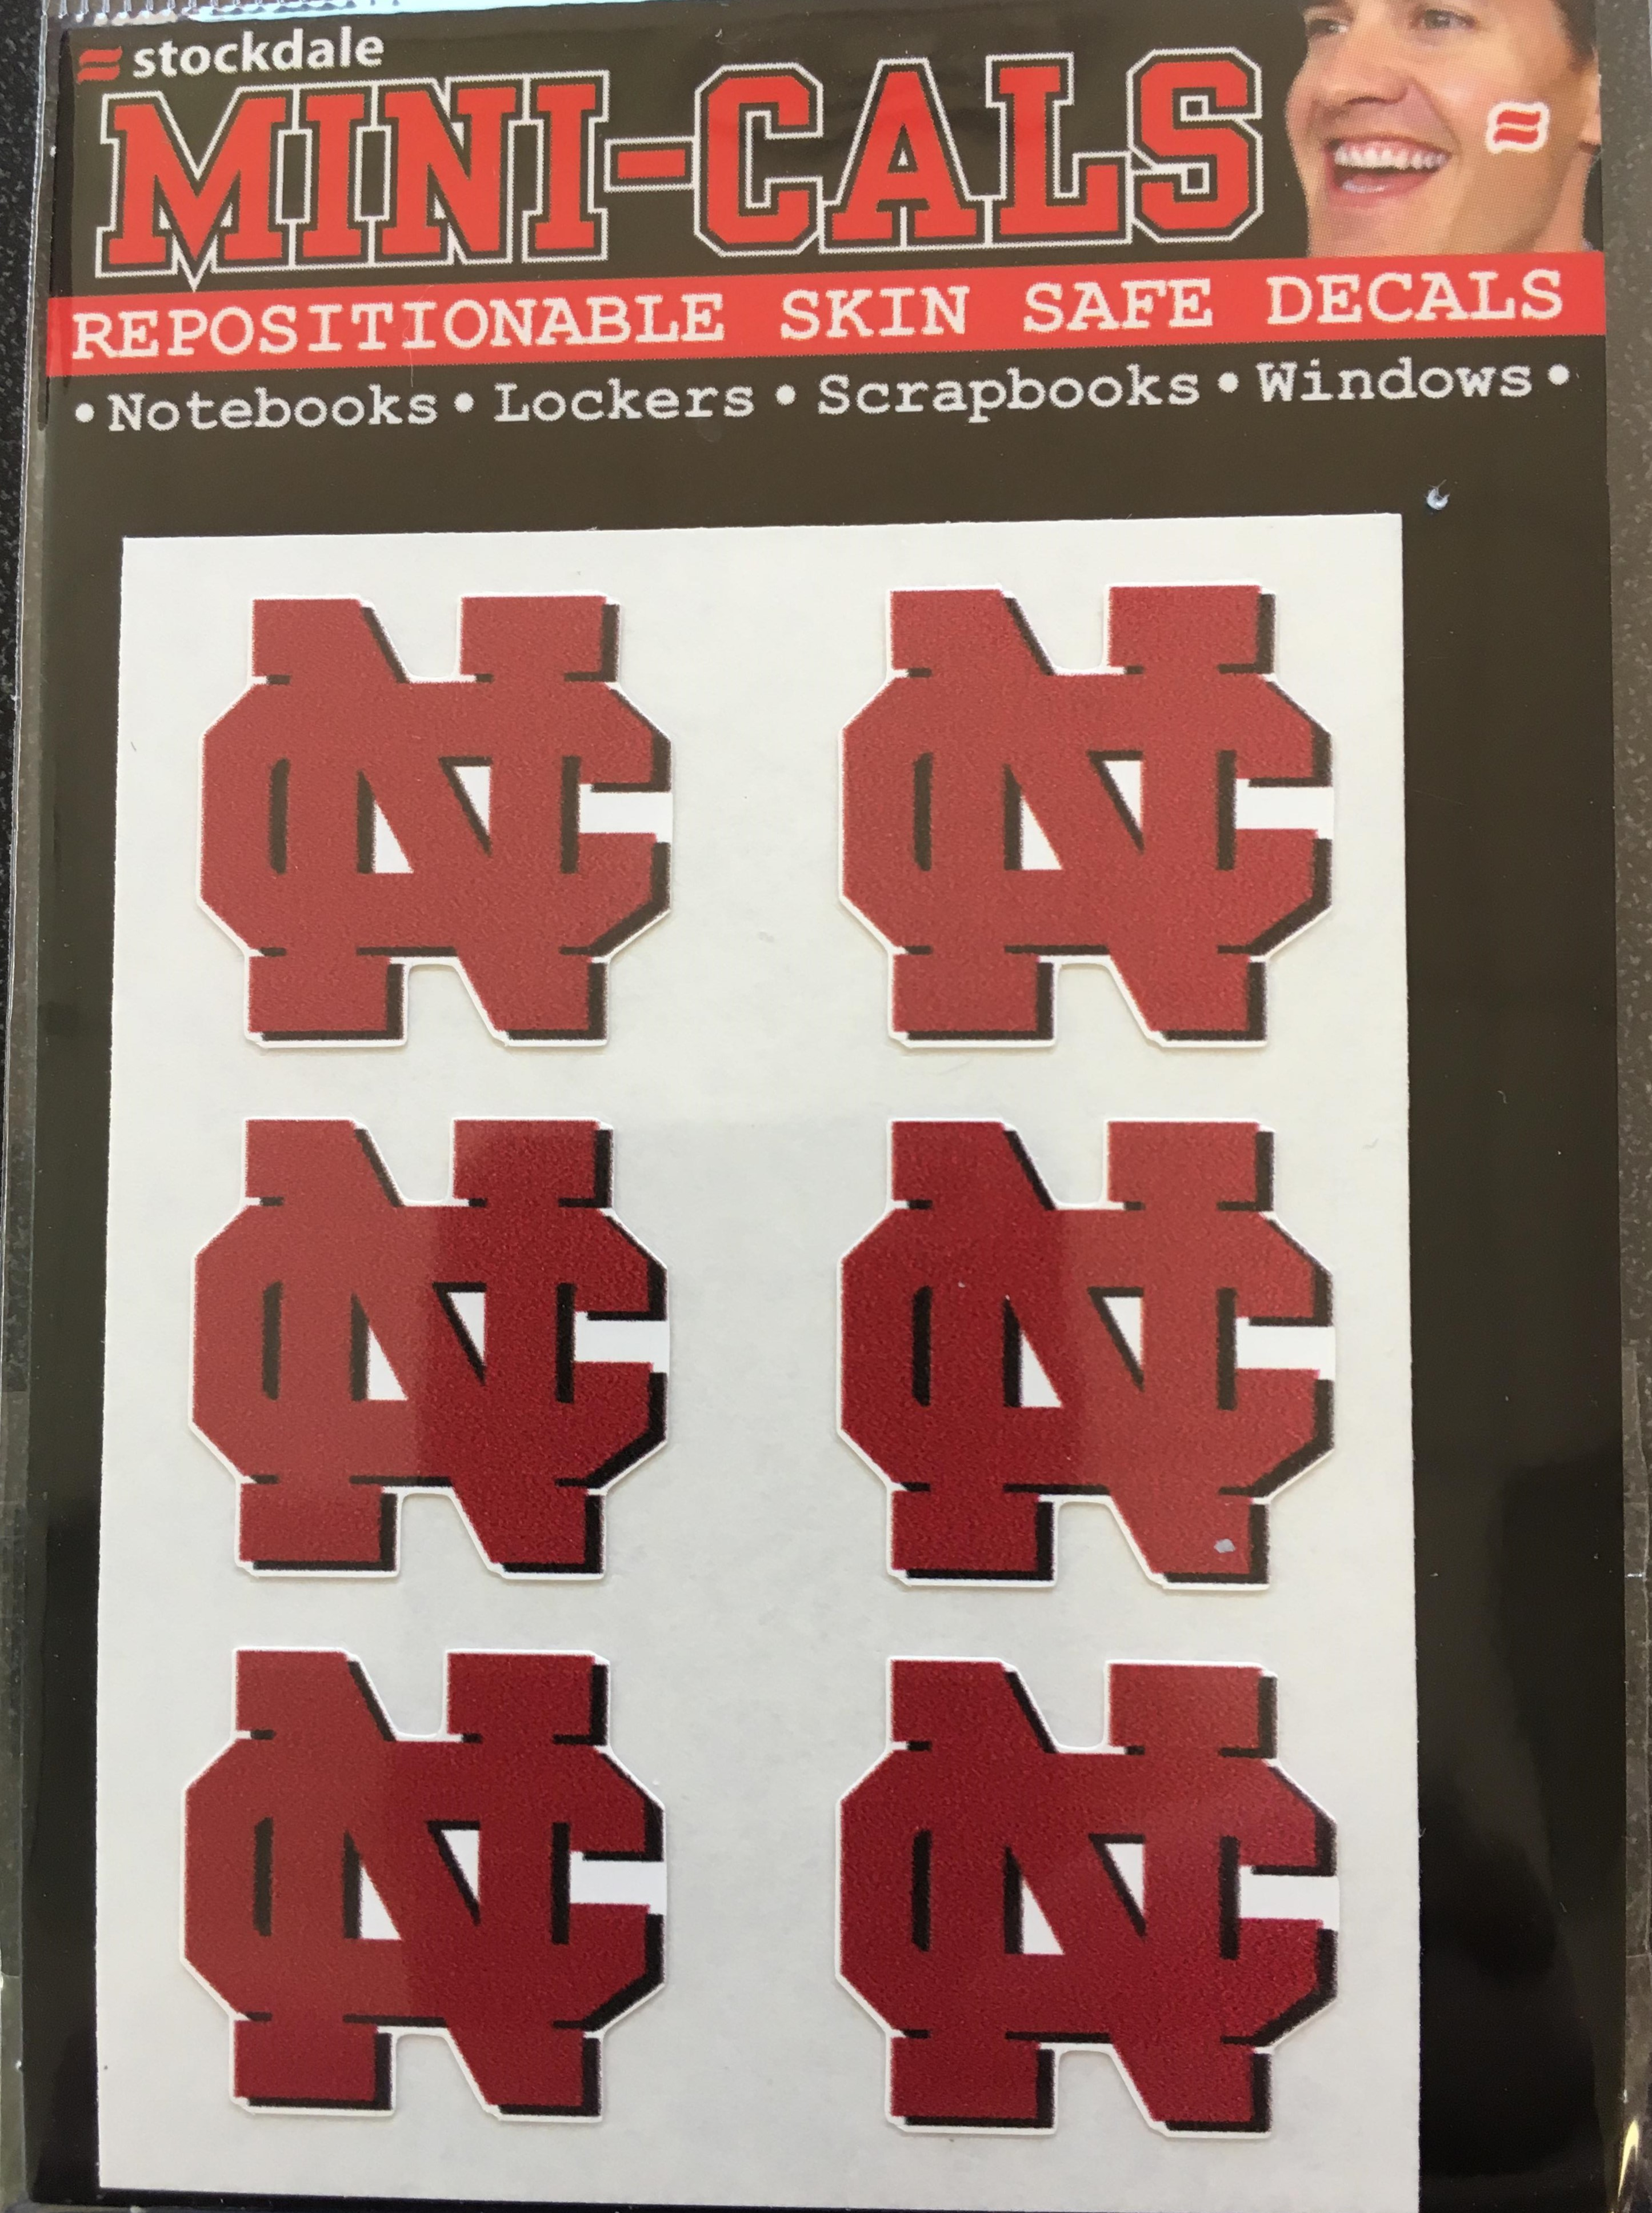 Image for the Mini-Cals Skin Safe Decals (Stockdale) product